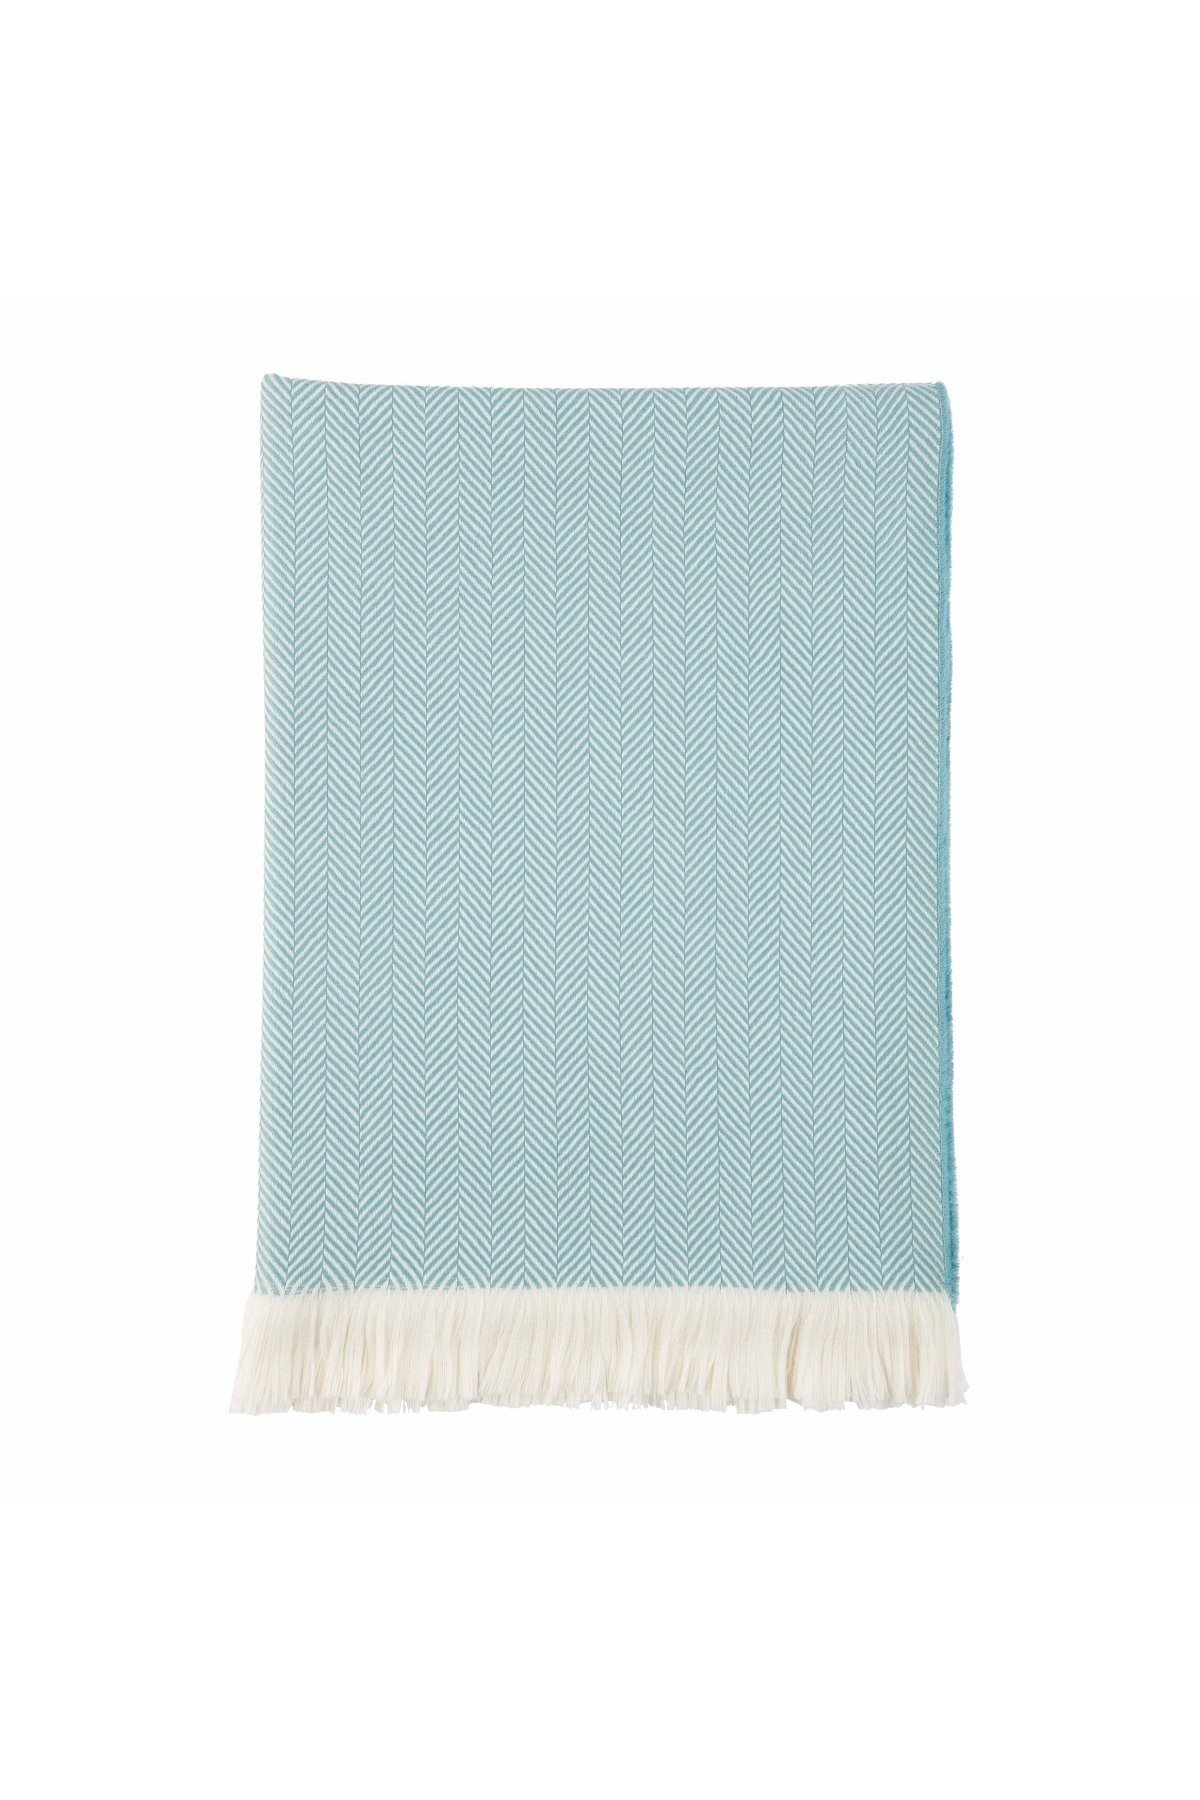 Johnston's of Elgin Extra Fine Merino Herringbone Throw - Aqua